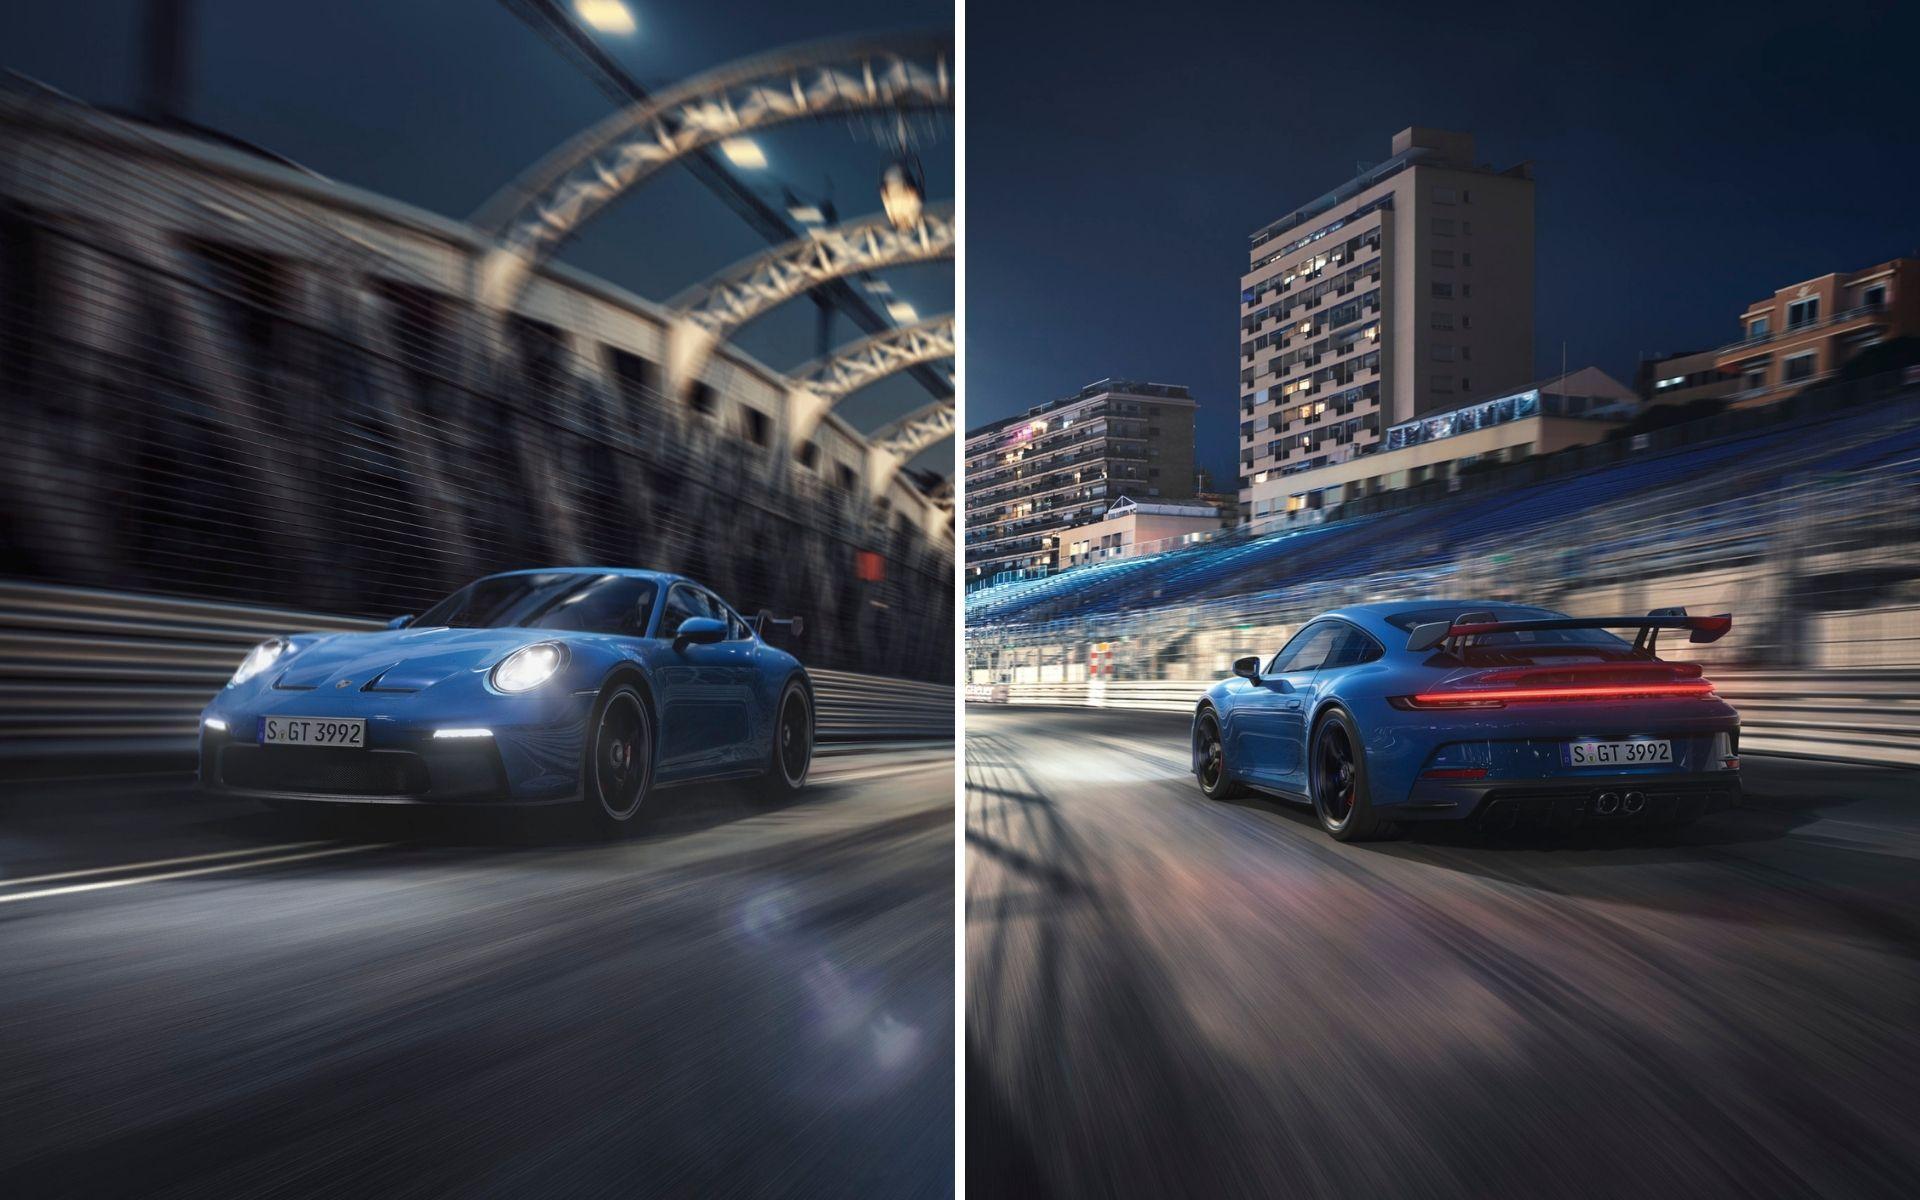 Porsche 911 GT3 Takes Sports Driving To The Next Level